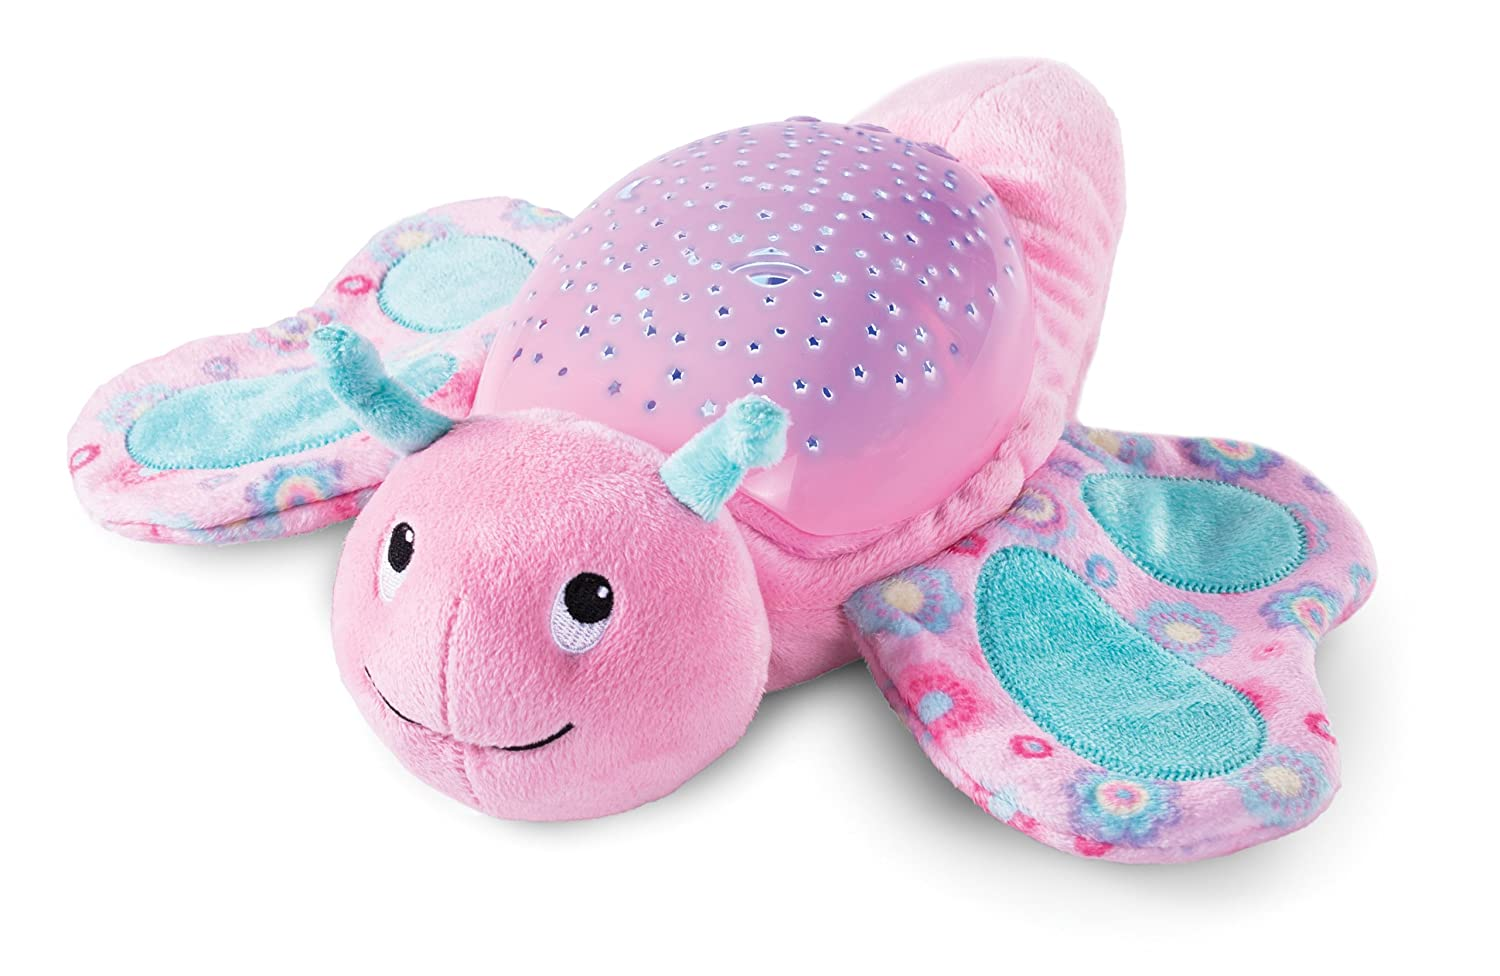 Full Size of Starsleep Sternenhimmel Summer Infant Slumber Buddies Projection And Melodies Soother Wohnzimmer Starsleep Sternenhimmel